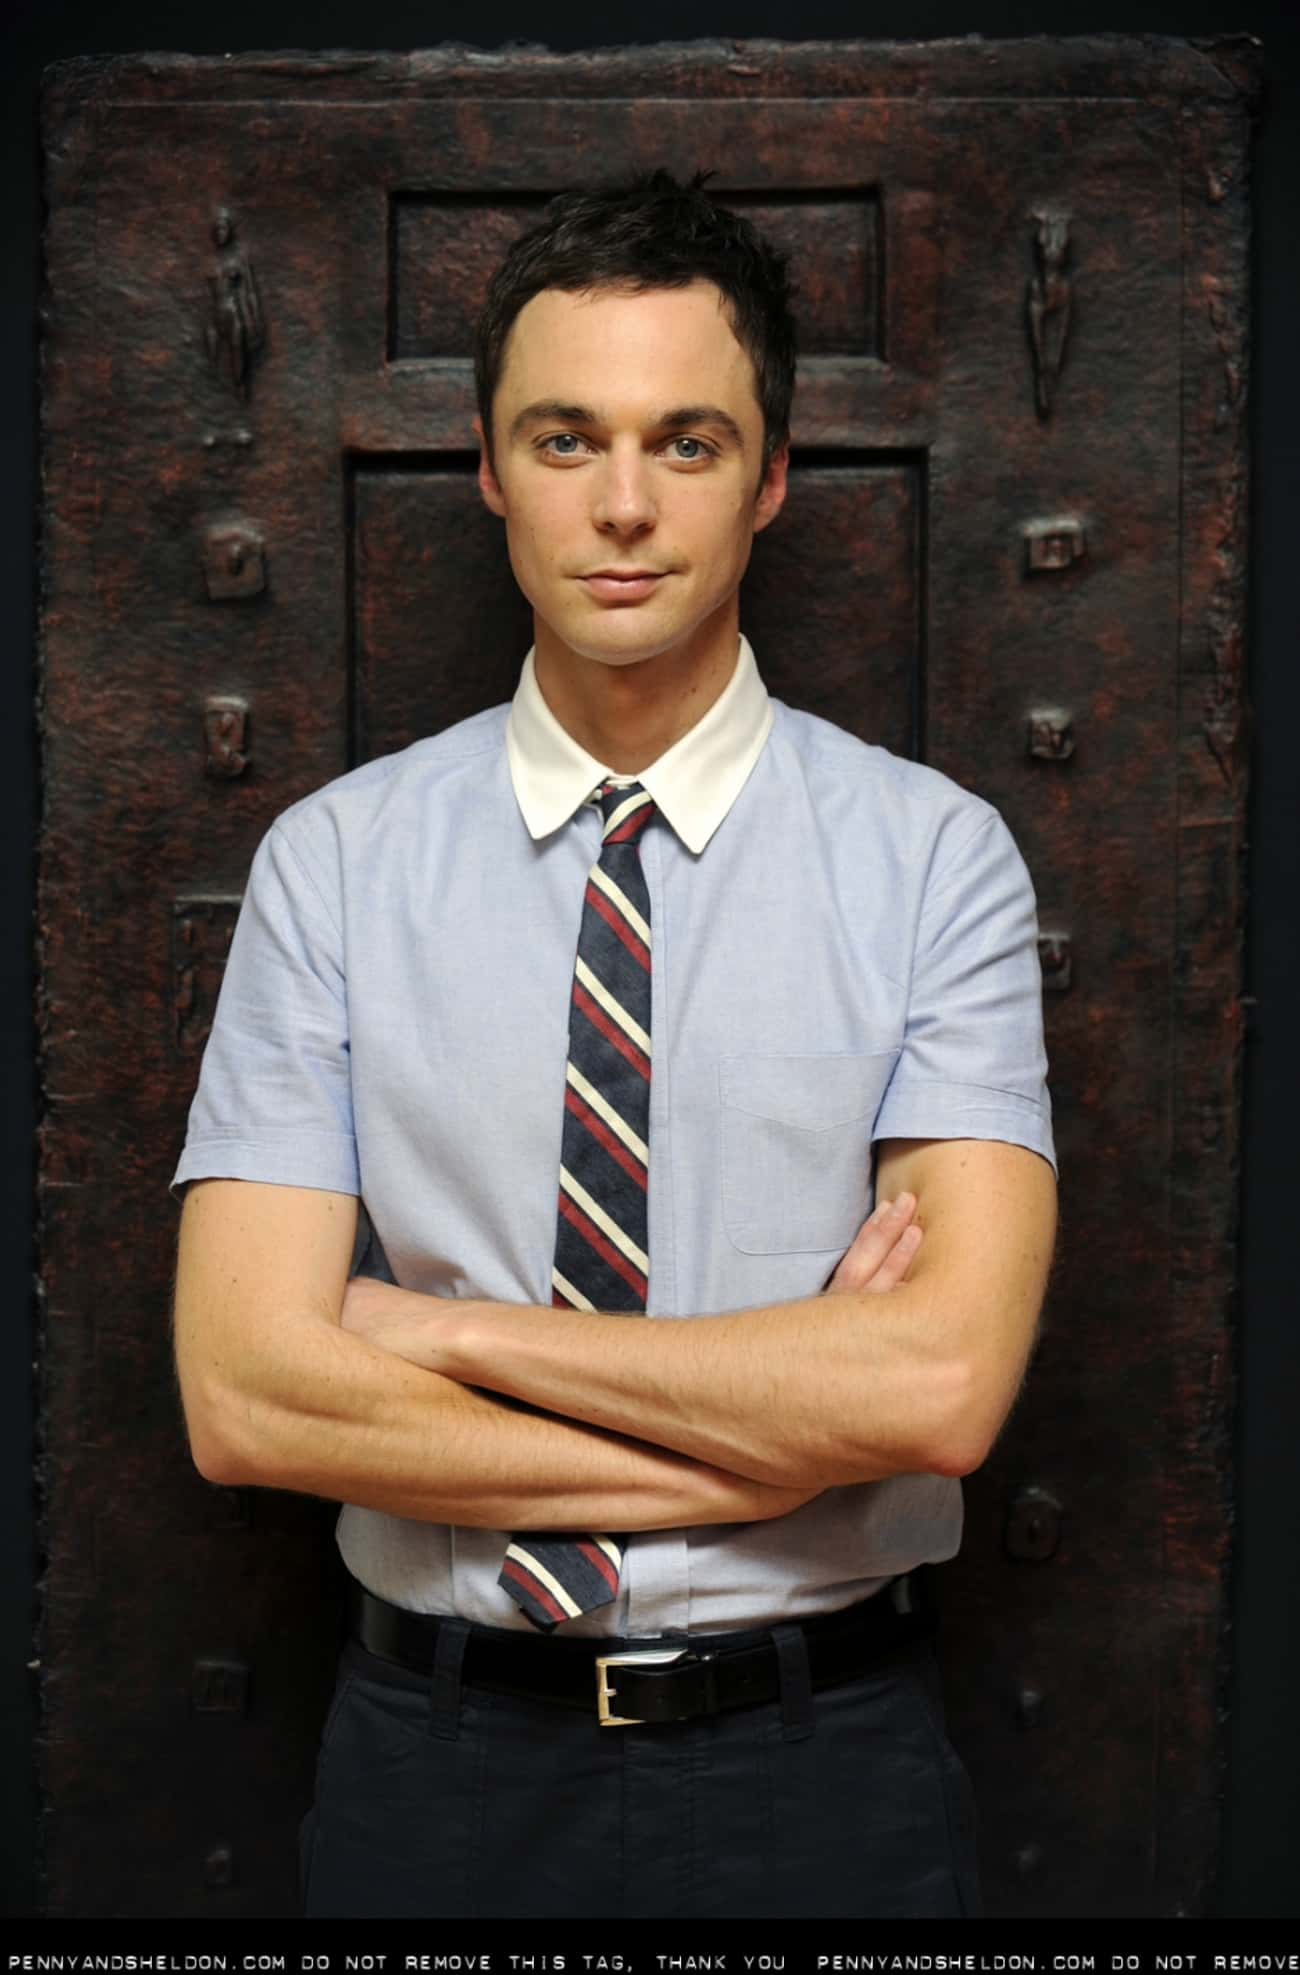 Jim Parsons in Contrast Collar is listed (or ranked) 1 on the list Hot Jim Parsons Photos